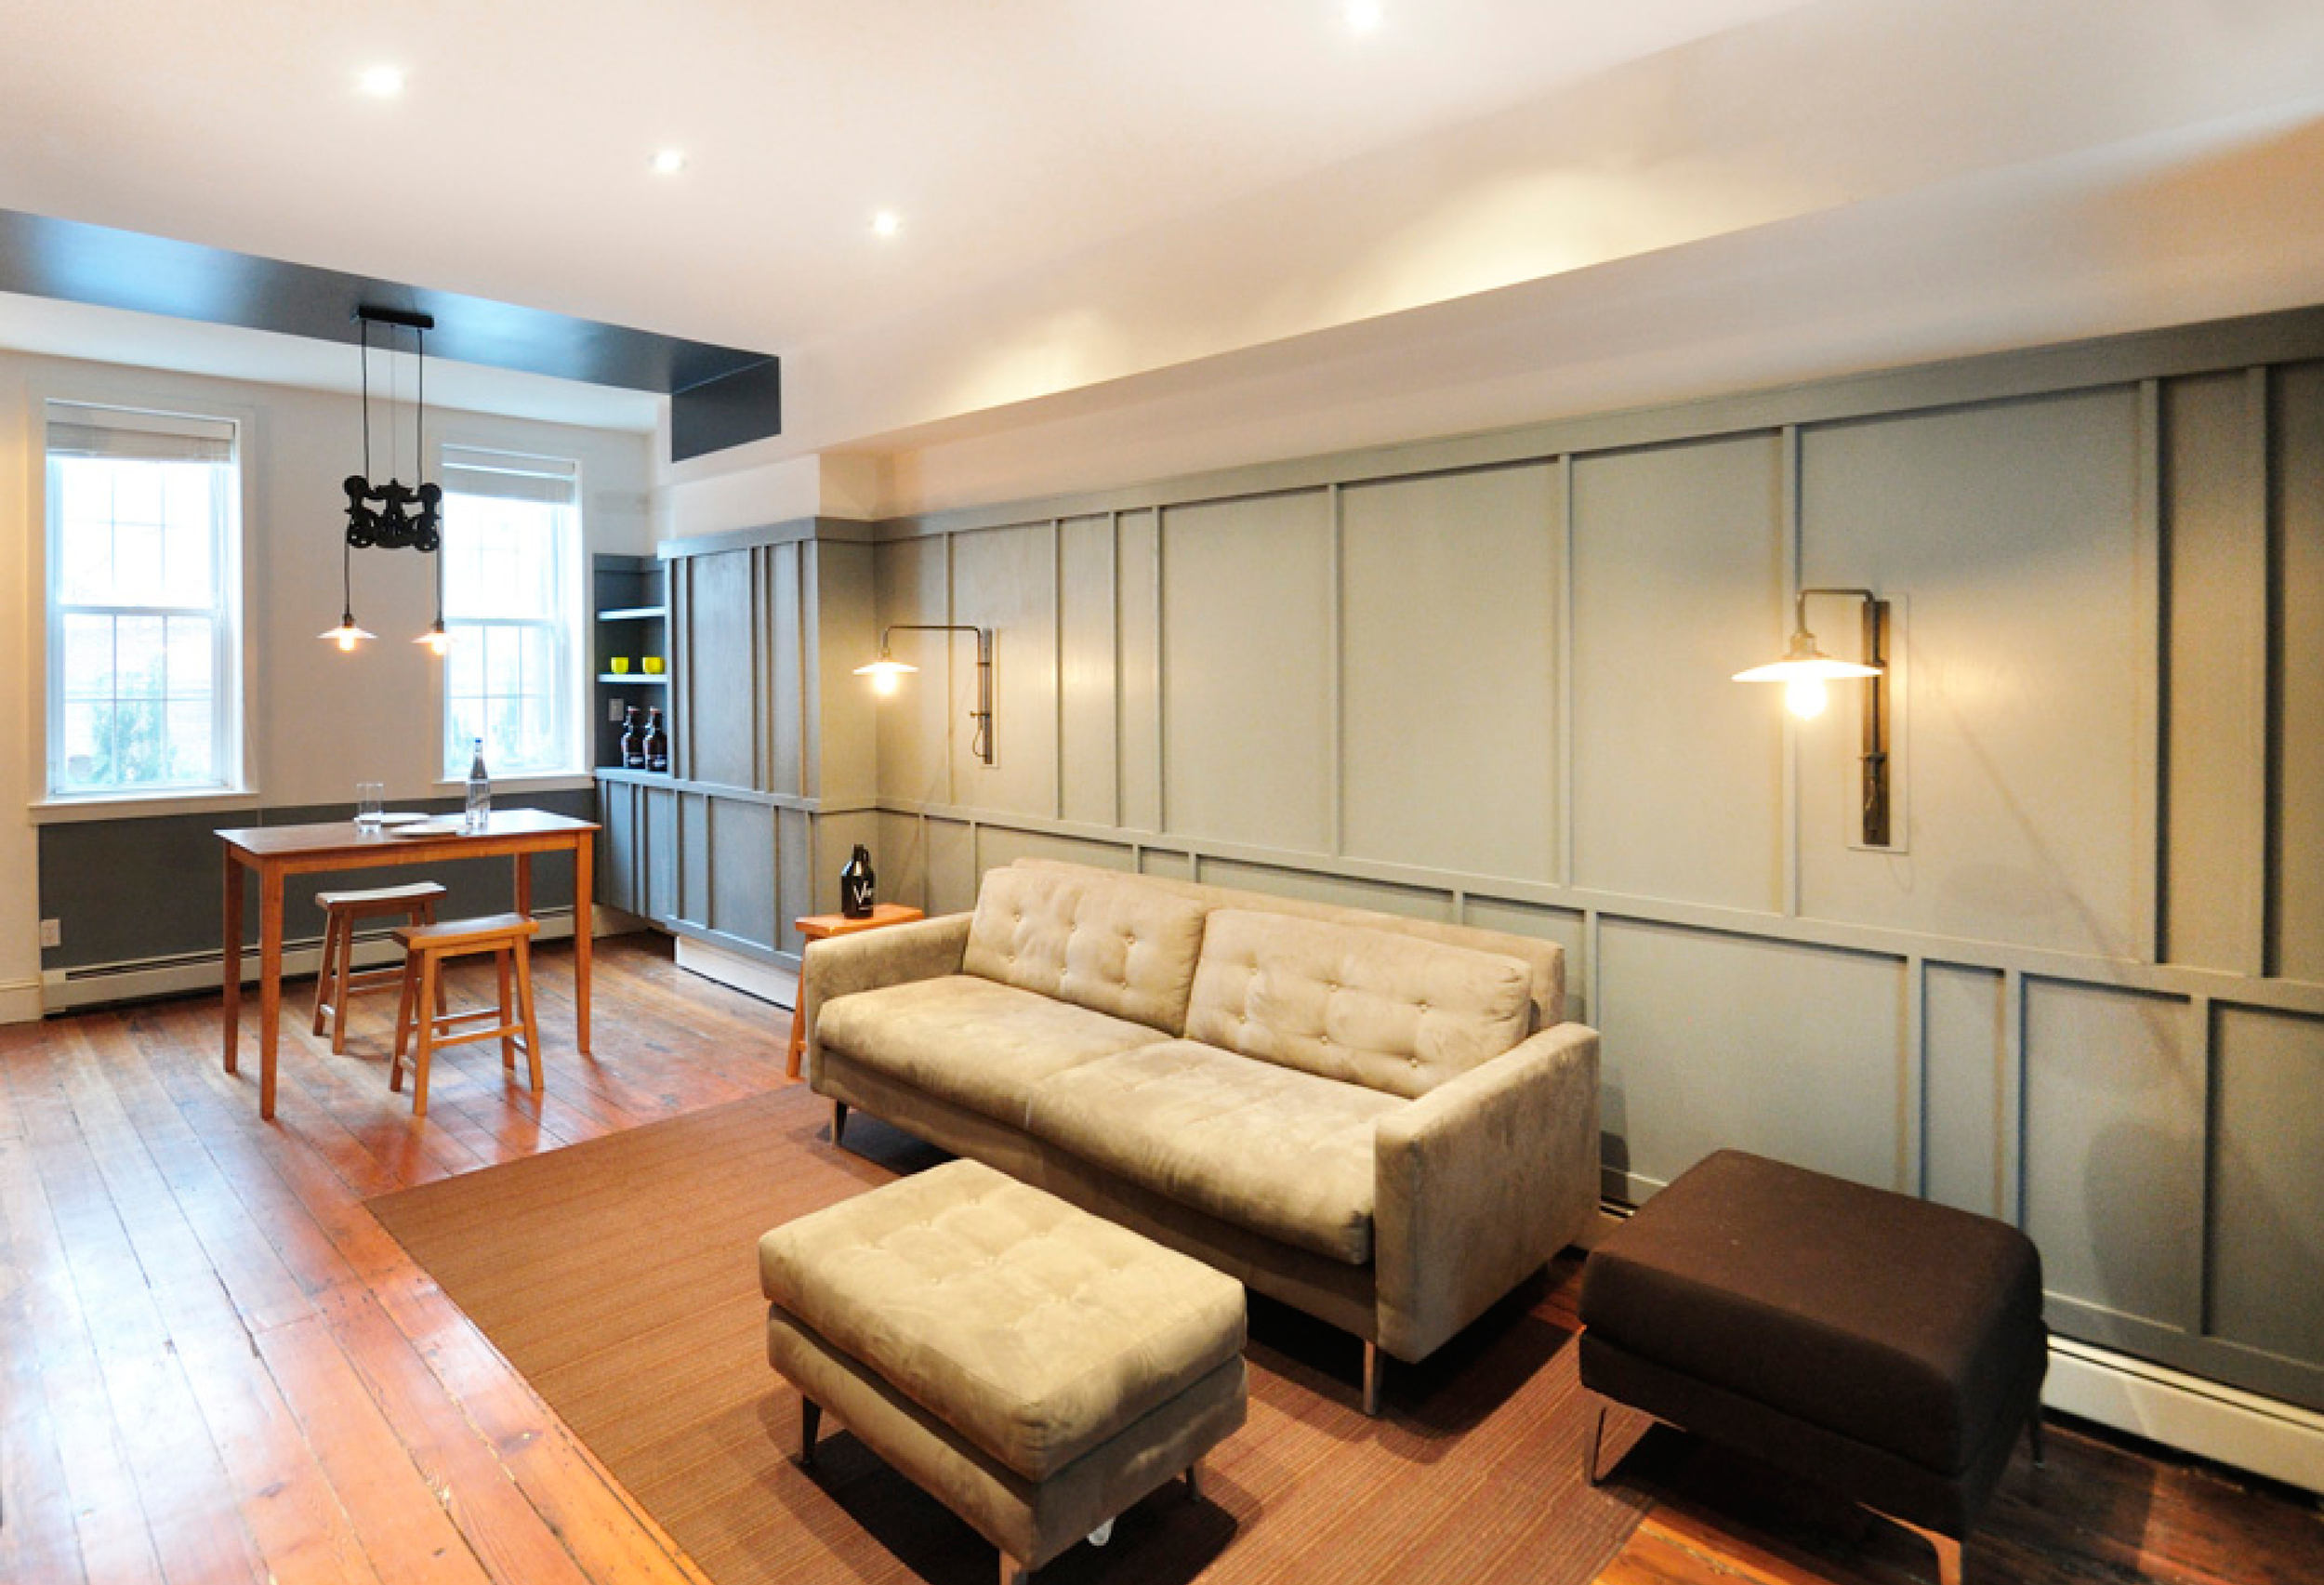 Pemberton | Residential Renovation